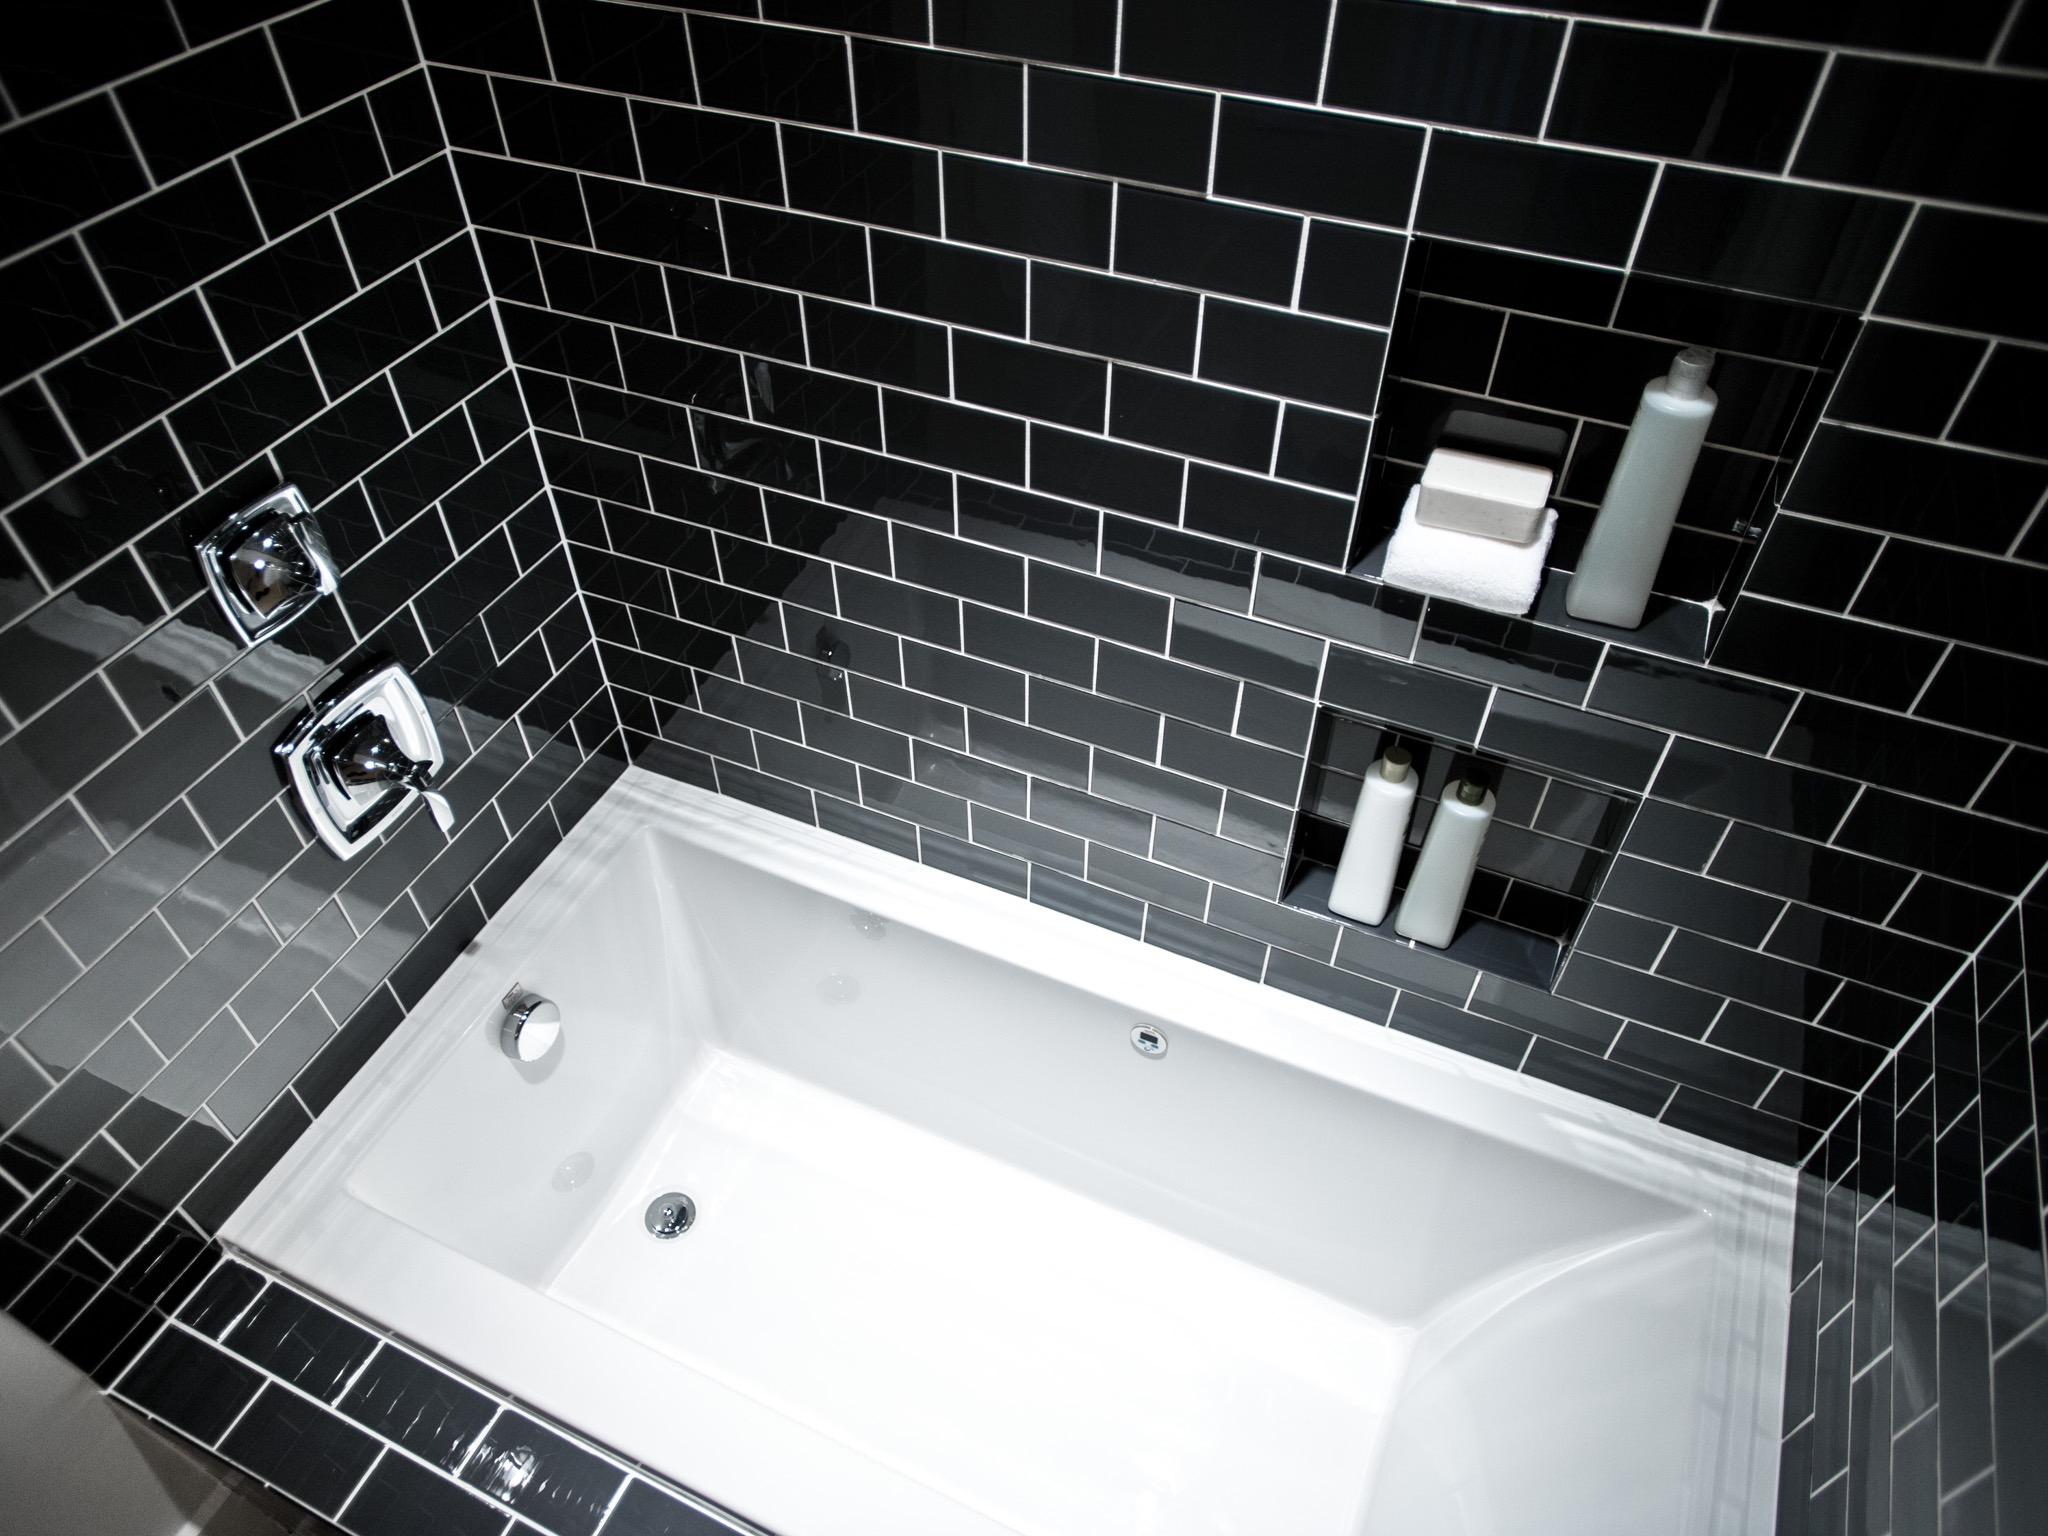 Black And White Modern Bathroom With Combination Tub And Shower (View 4 of 19)